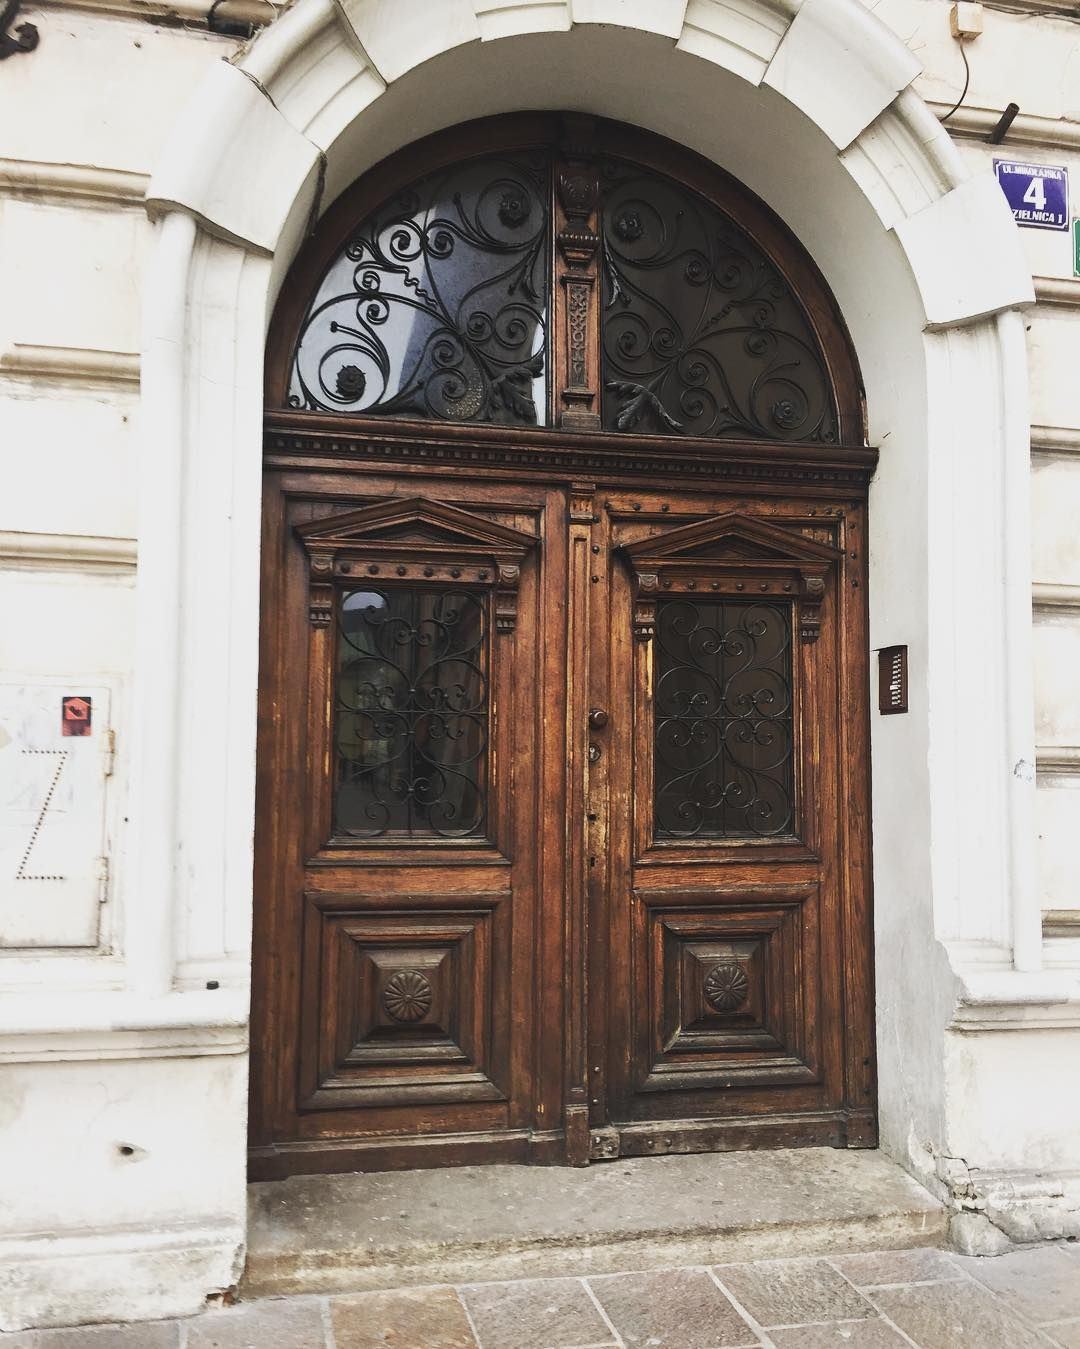 Sweet Looking Door In The Krakow Old Town #kiwiroamer #sightseeking #doors  #krakow